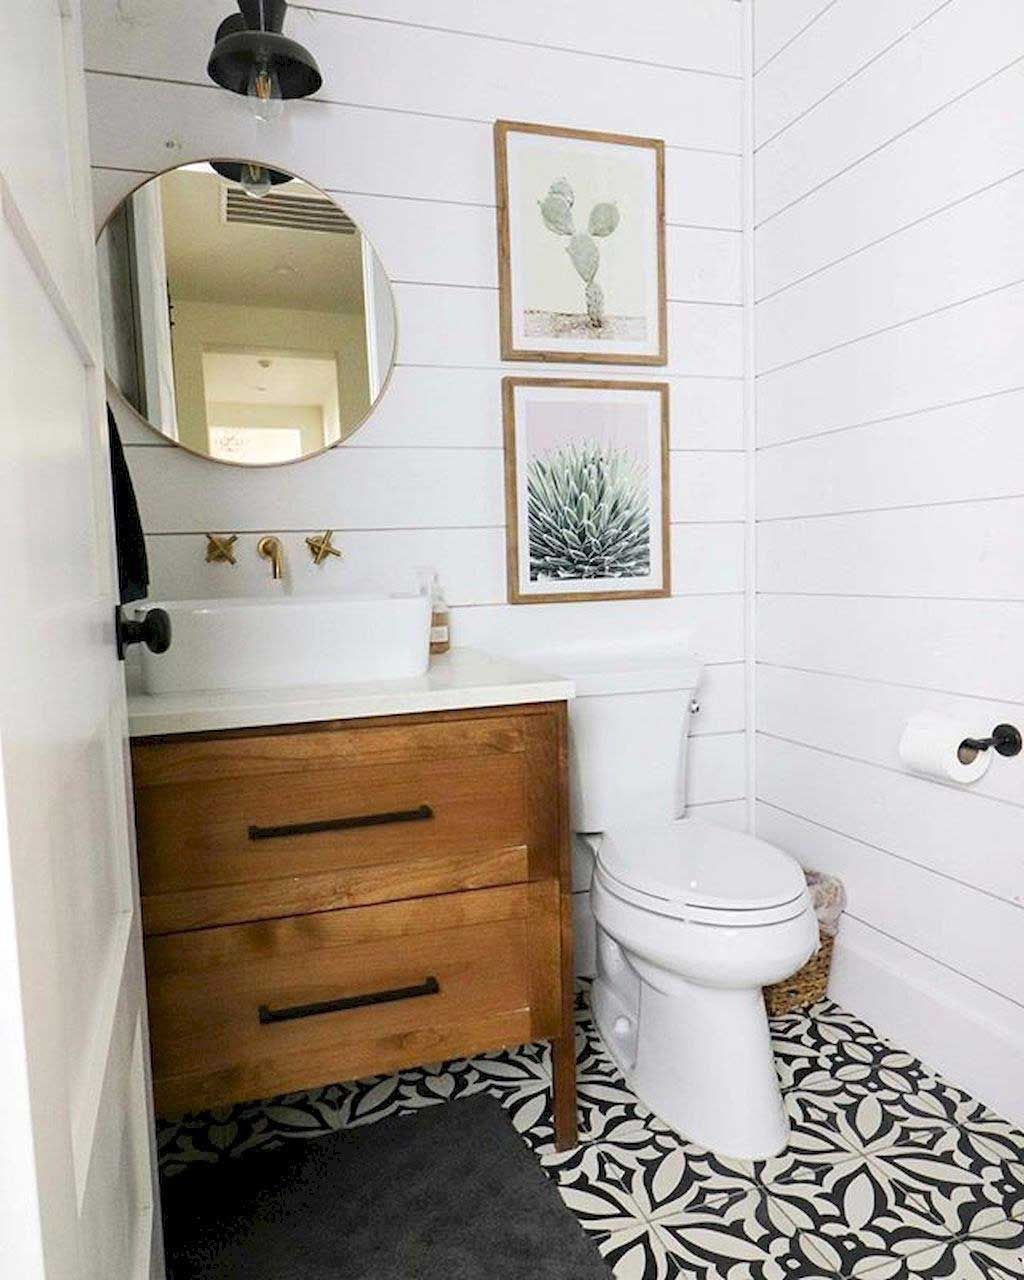 44 Low Cost Farmhouse Bathroom Design Ideas 28 With Lamp Decor Best Inspiration Ideas That You Want In 2020 Small Bathroom Design Small Bathroom Decor Bathroom Design Small